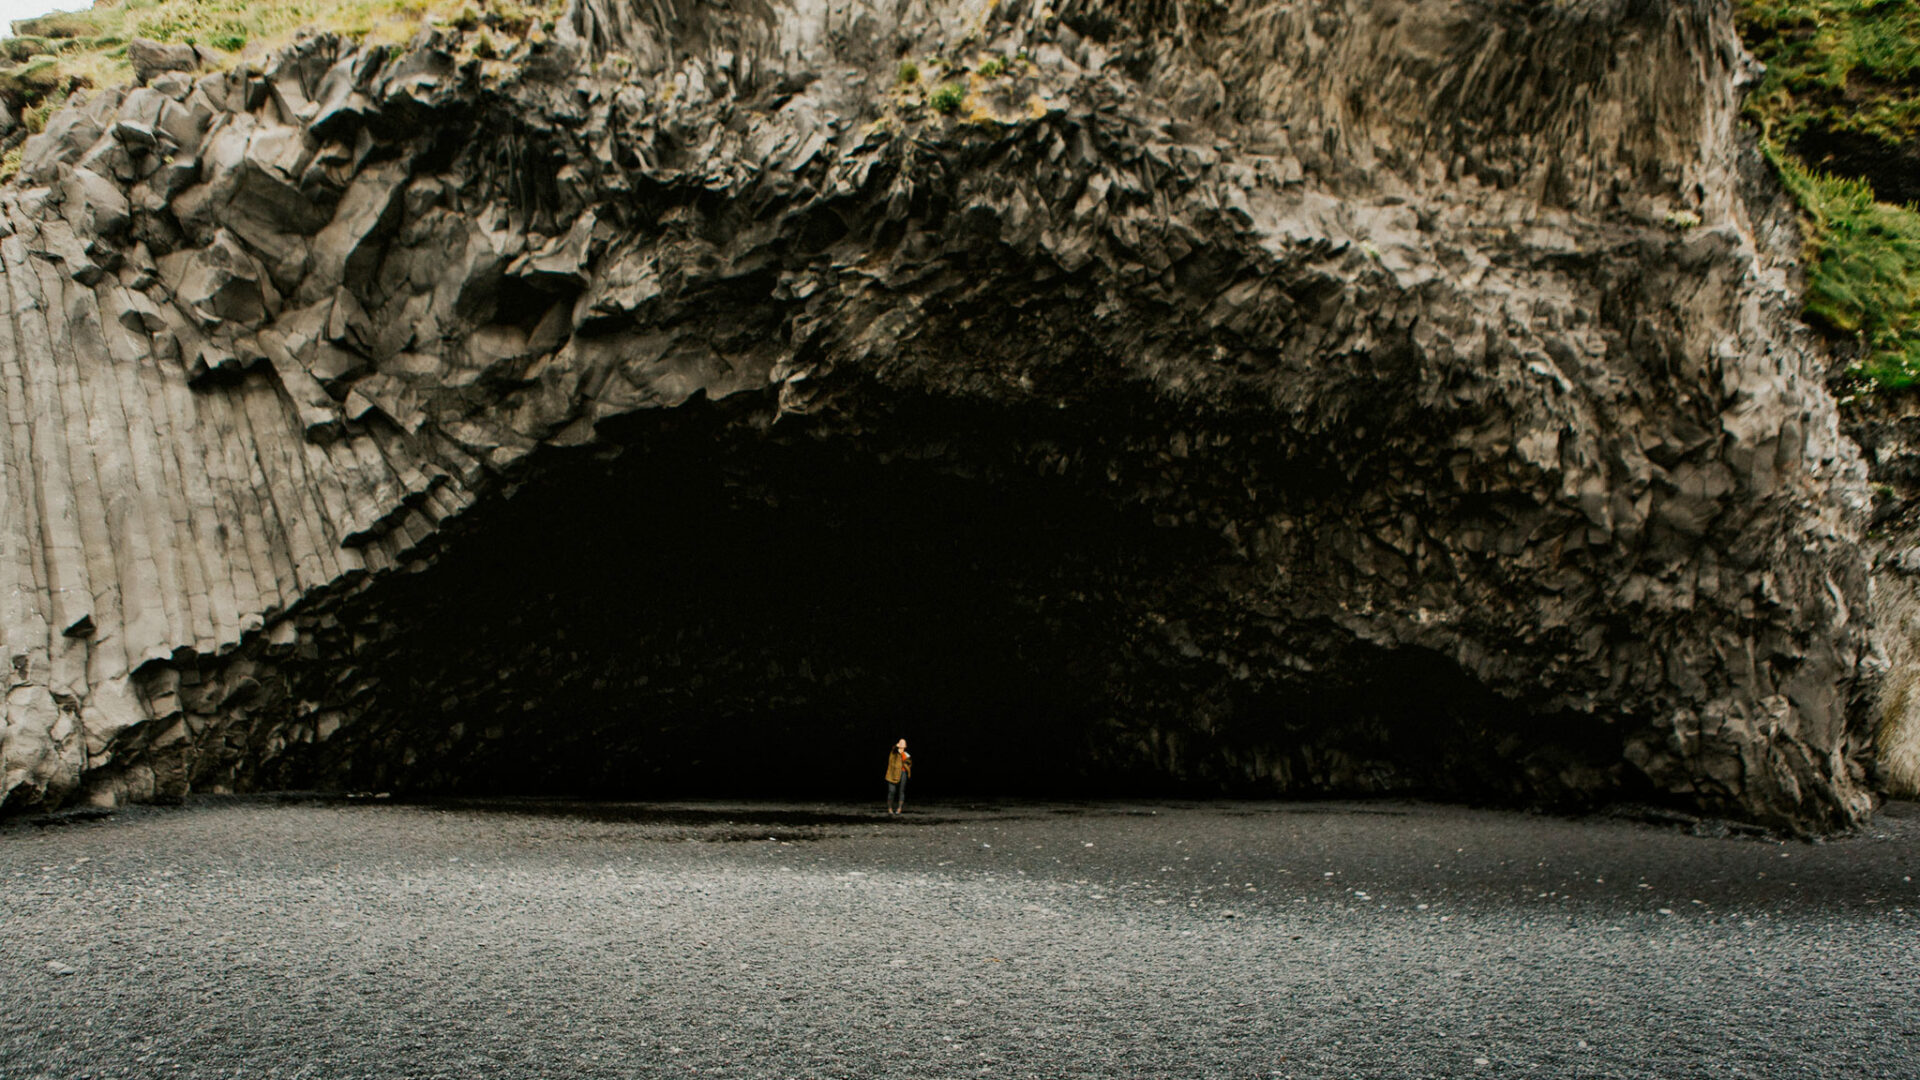 Person standing in large cave entrance